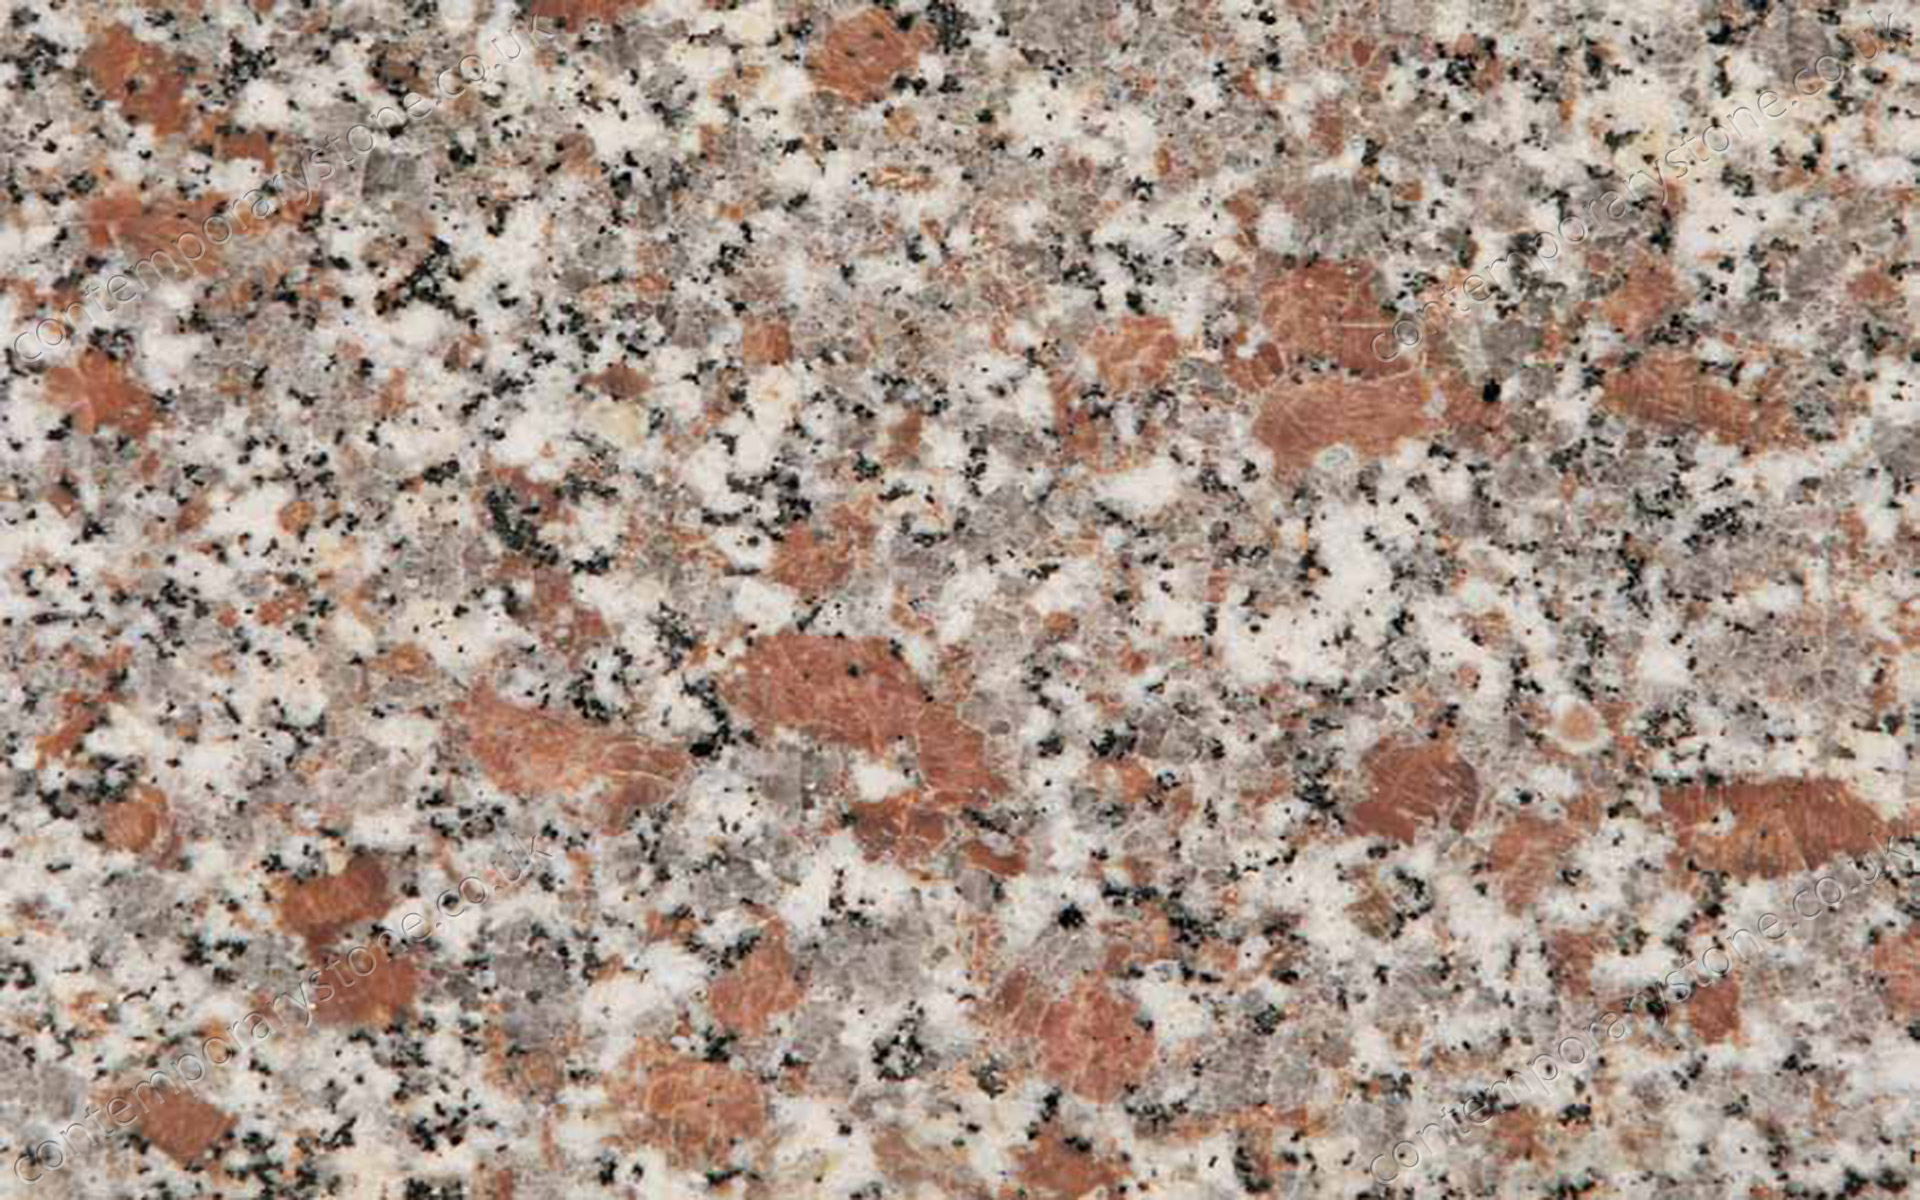 Ghiandone Rosato granite close-up